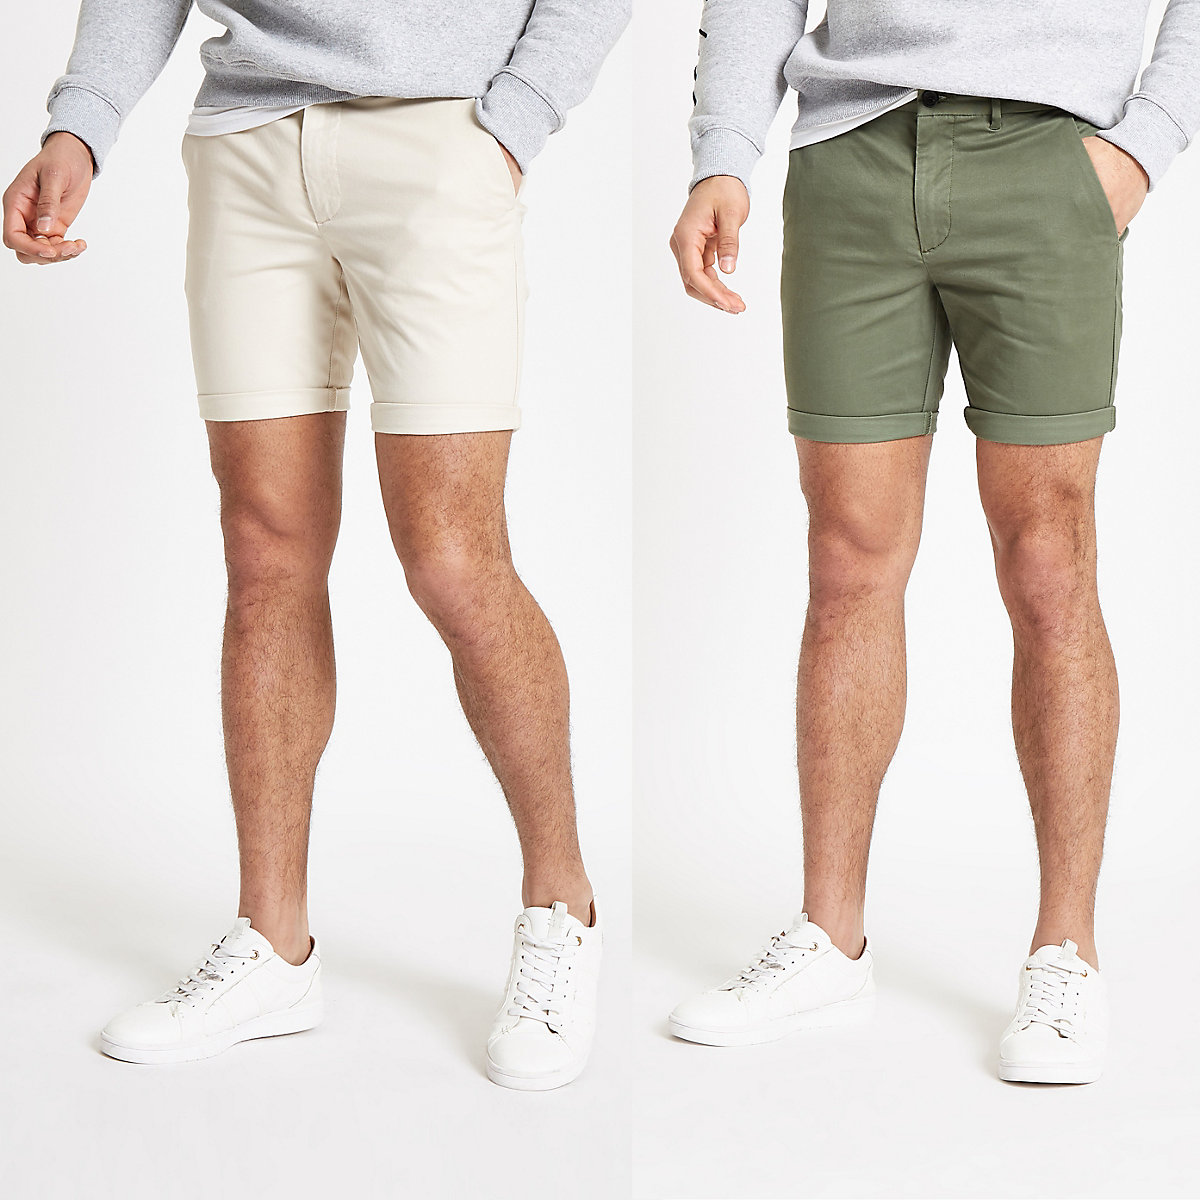 Stone skinny fit chino shorts 2 pack